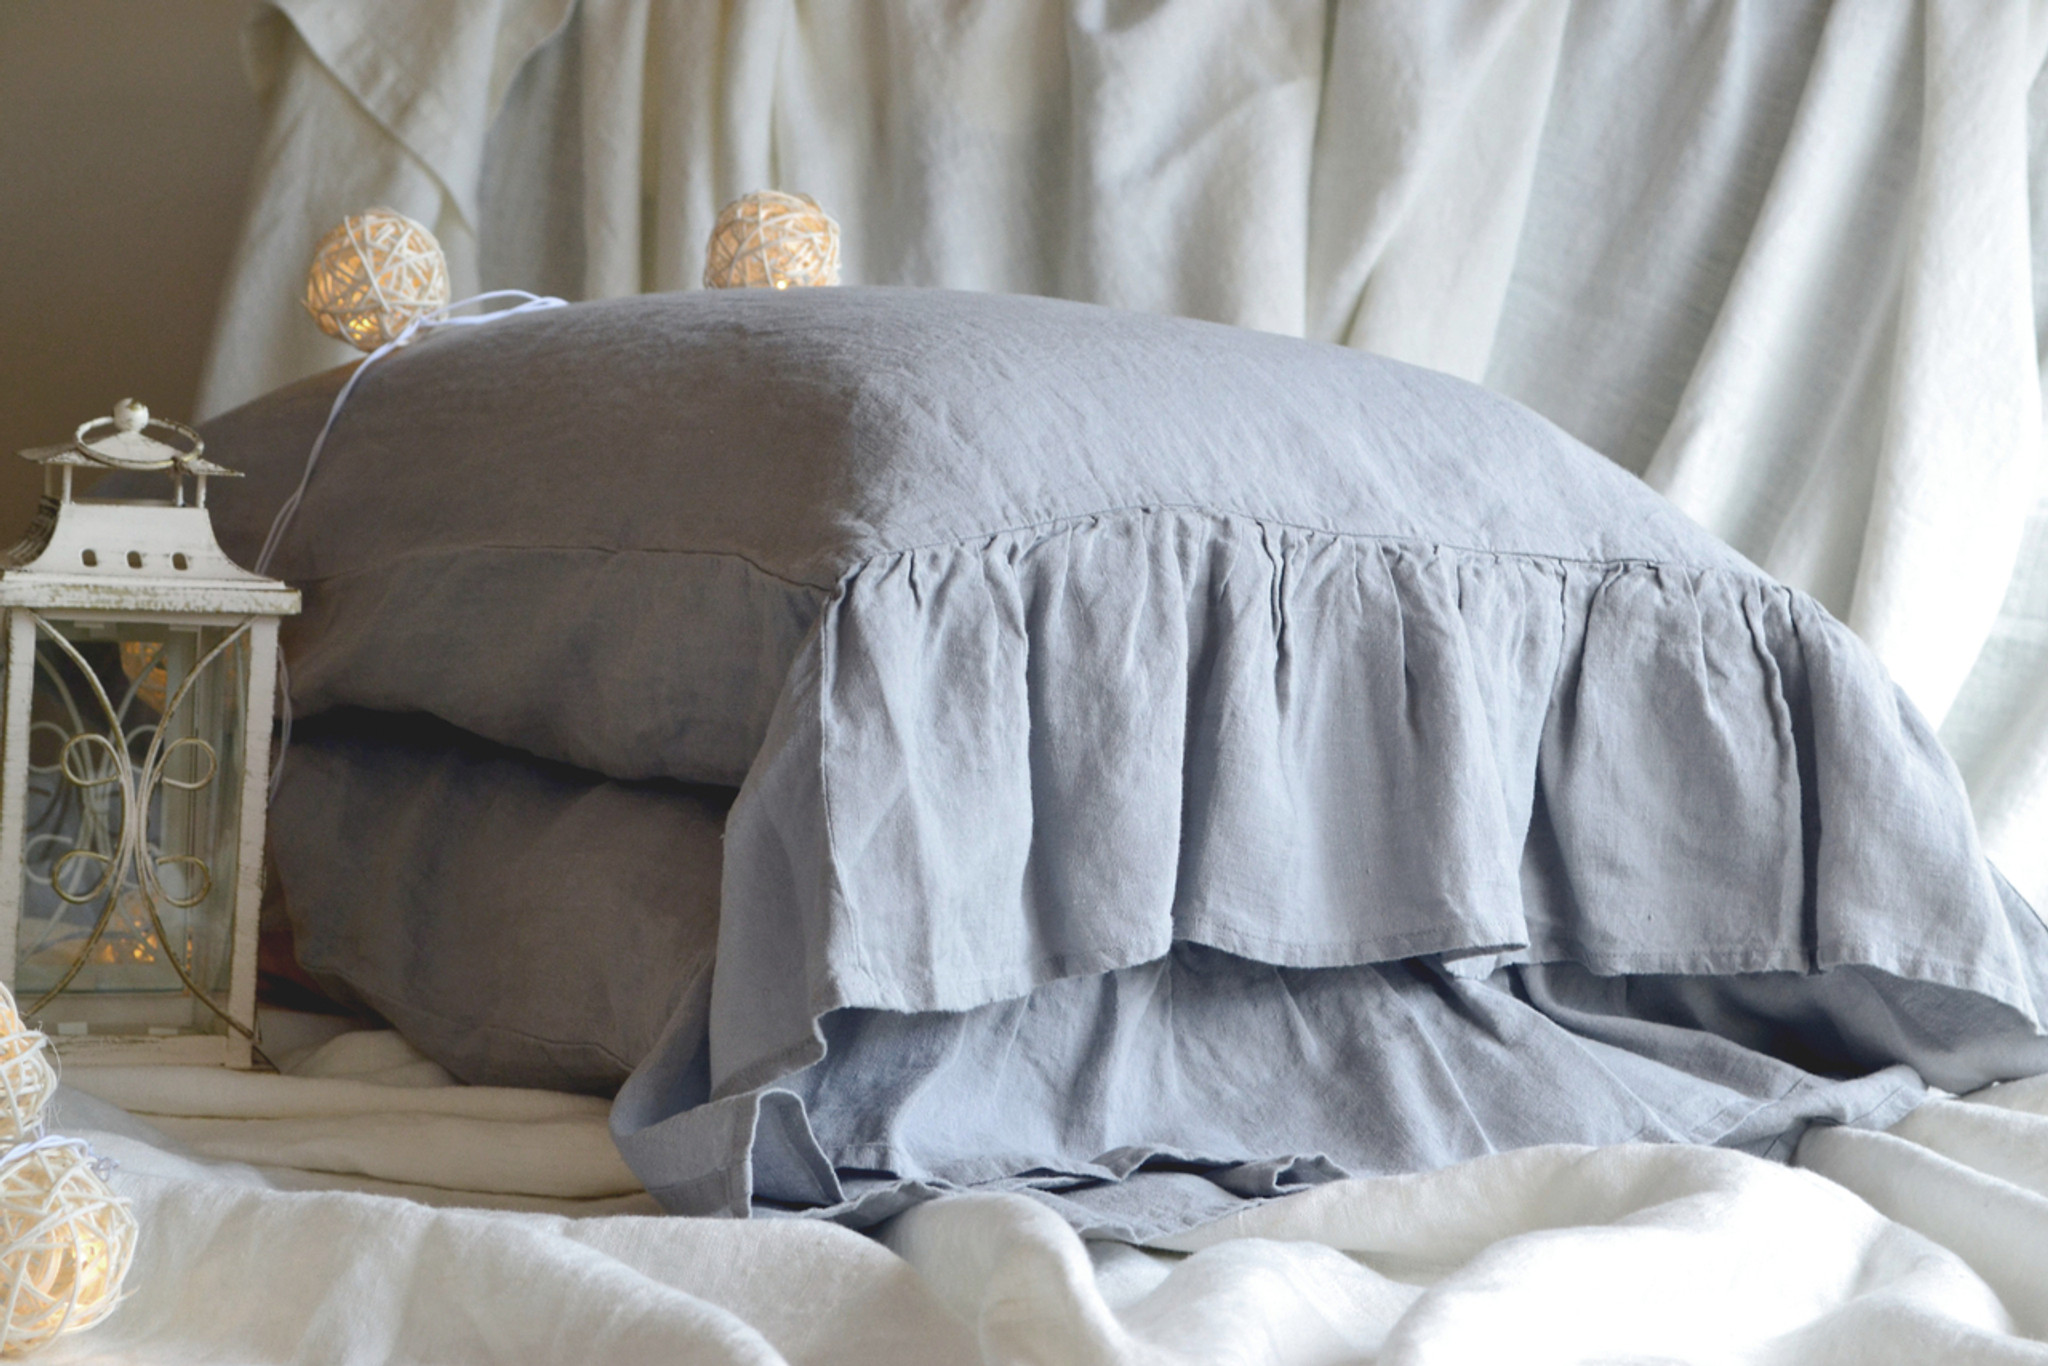 Set of 2 light grey stonewashed linen pillowcases with ruffle